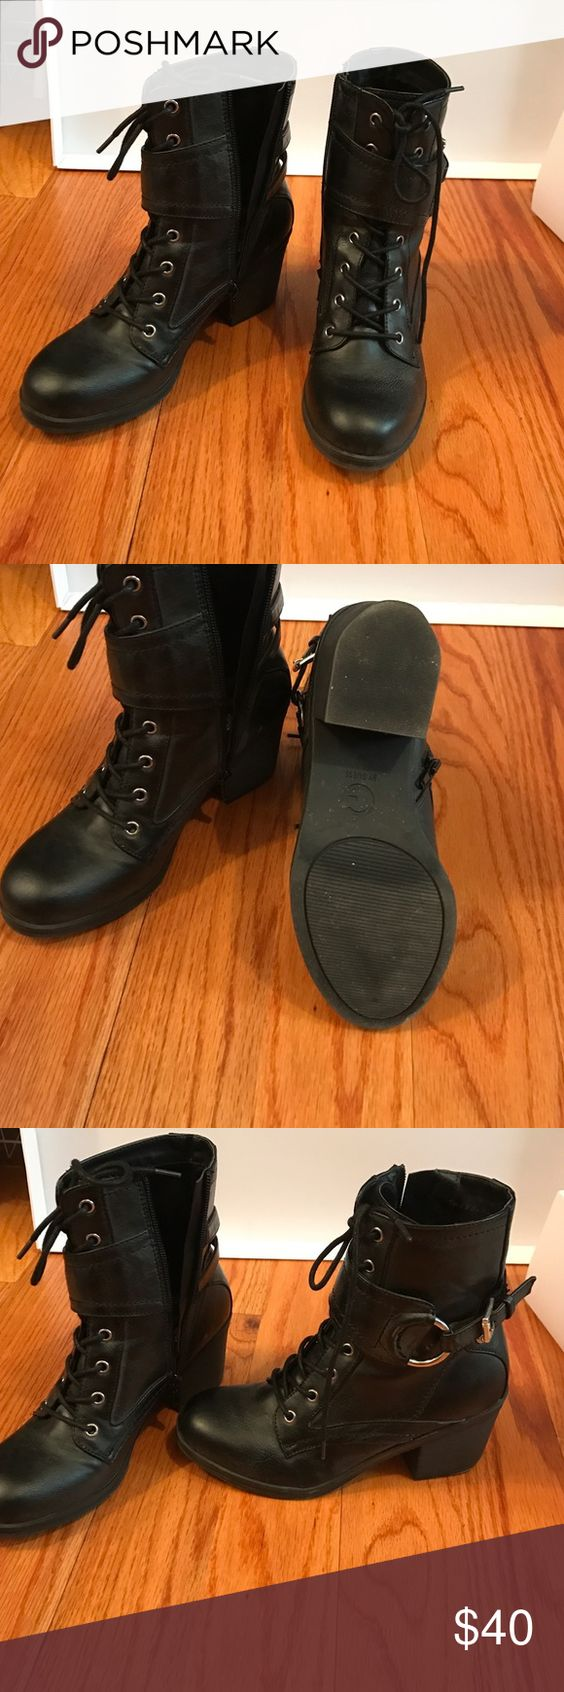 Boots Guess black boots like new only worn once G by Guess Shoes Ankle Boots & Booties